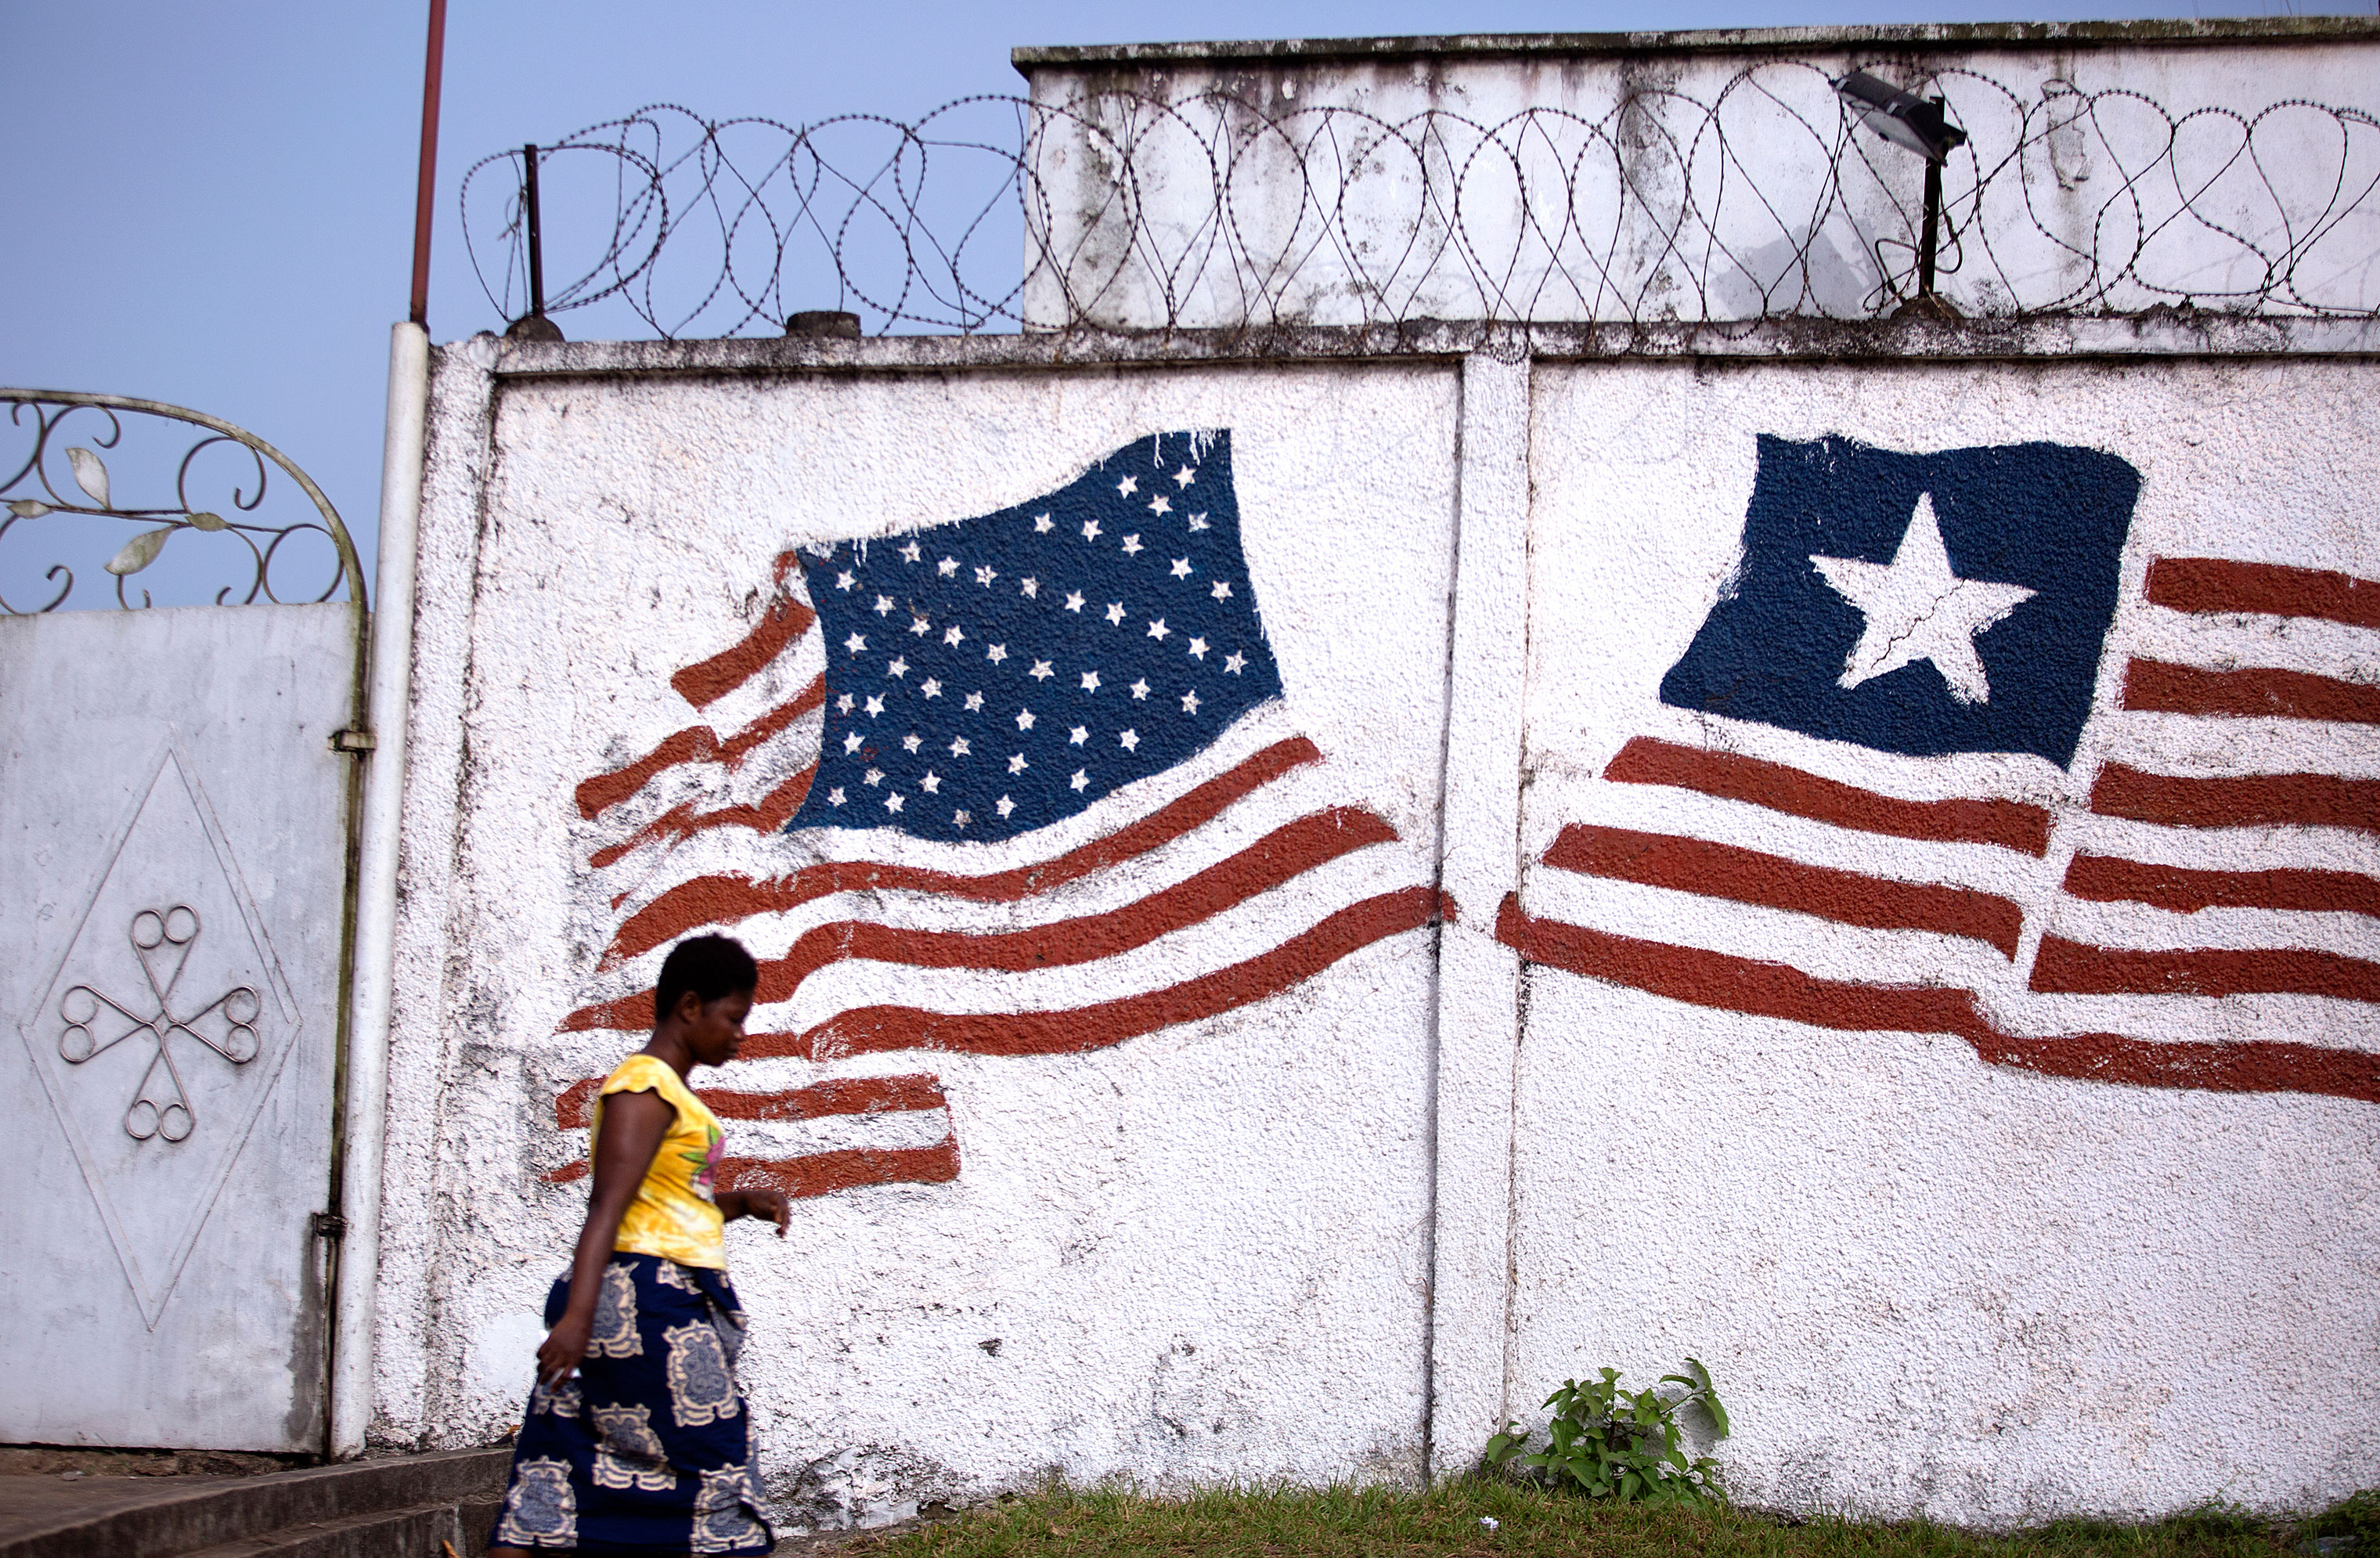 A woman in Monrovia walks past a mural of the Liberian and American flags. Liberia was formed by the American Colonization Society, an organization that resettled free African Americans and freed slaves.